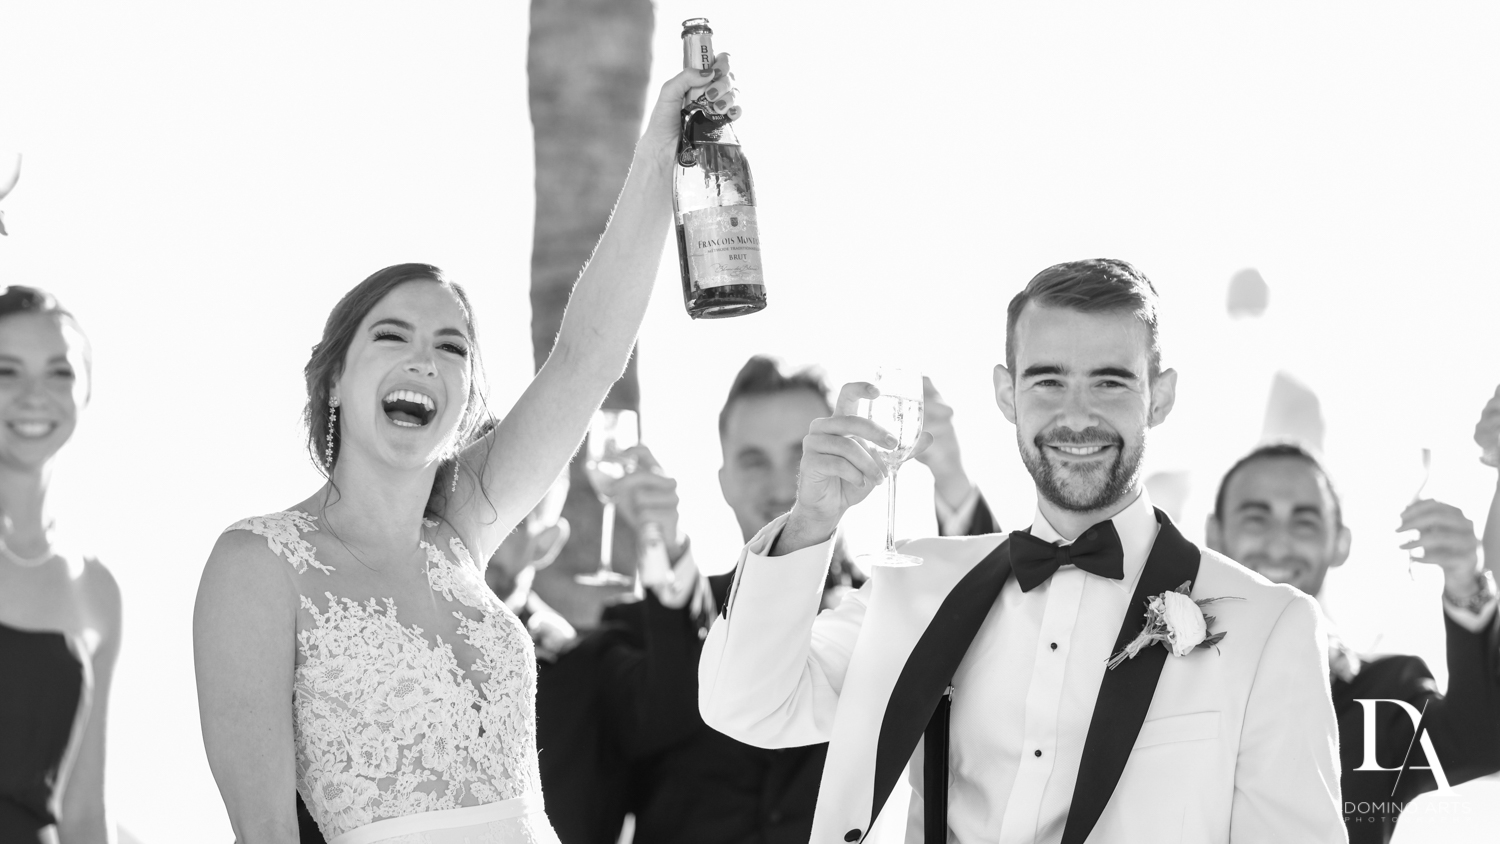 fun toast at Tropical Garden Wedding at Fisher Island Miami by Domino Arts Photography